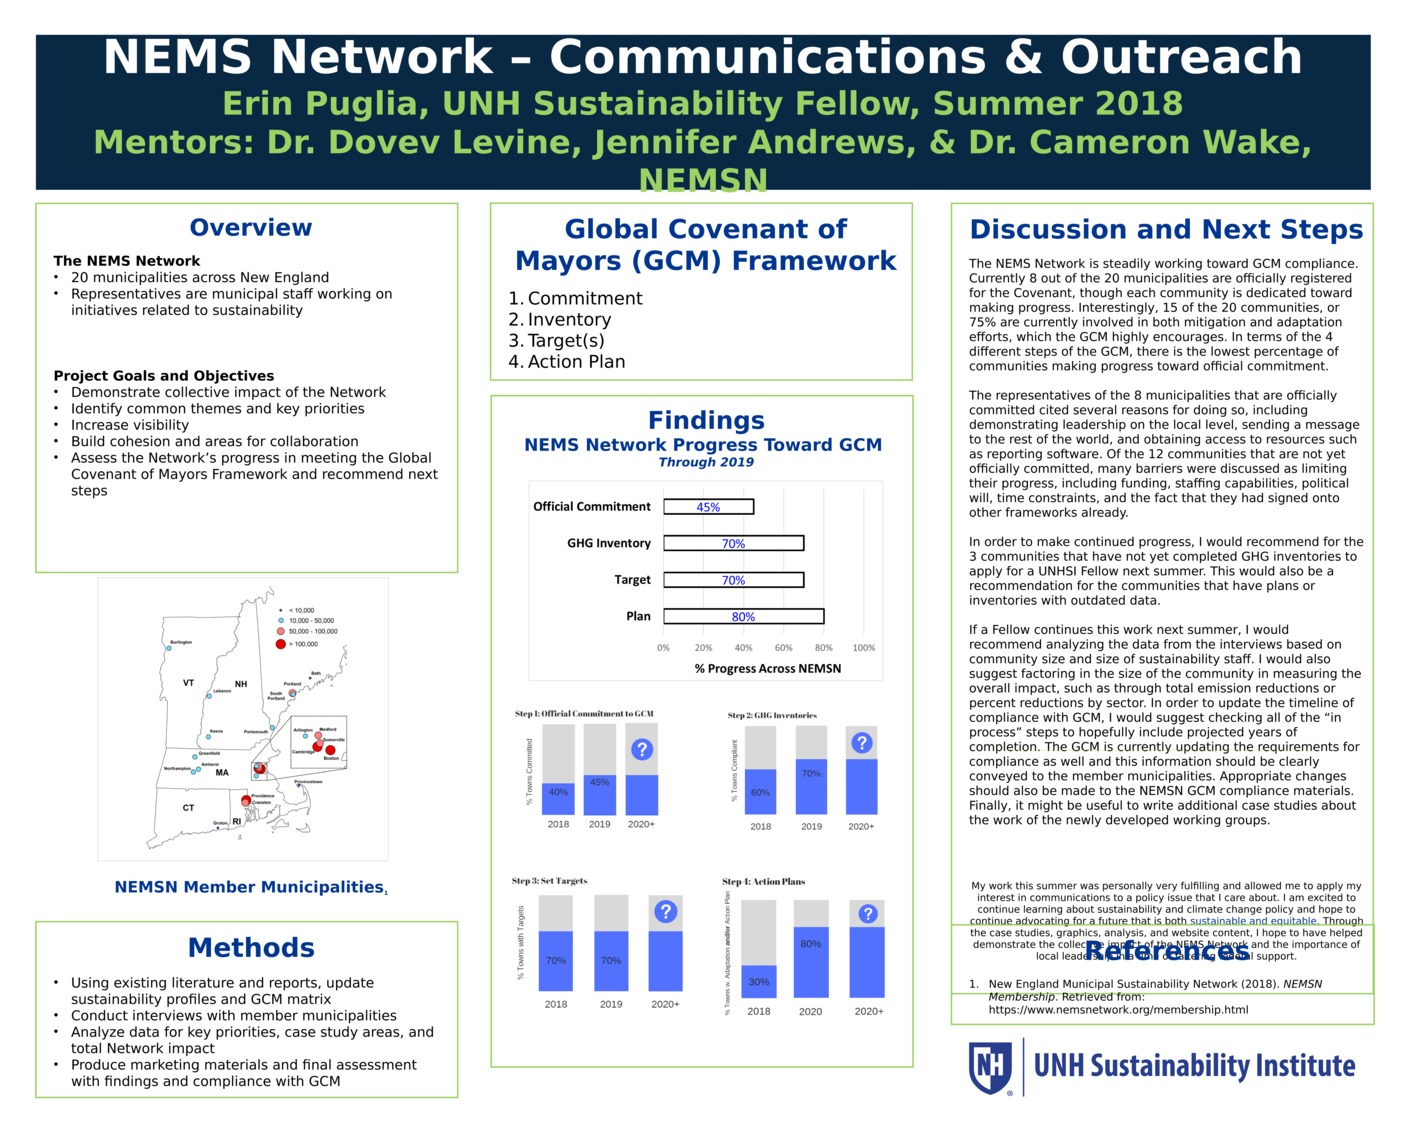 Nems Network - Communications And Outreach by erinpuglia